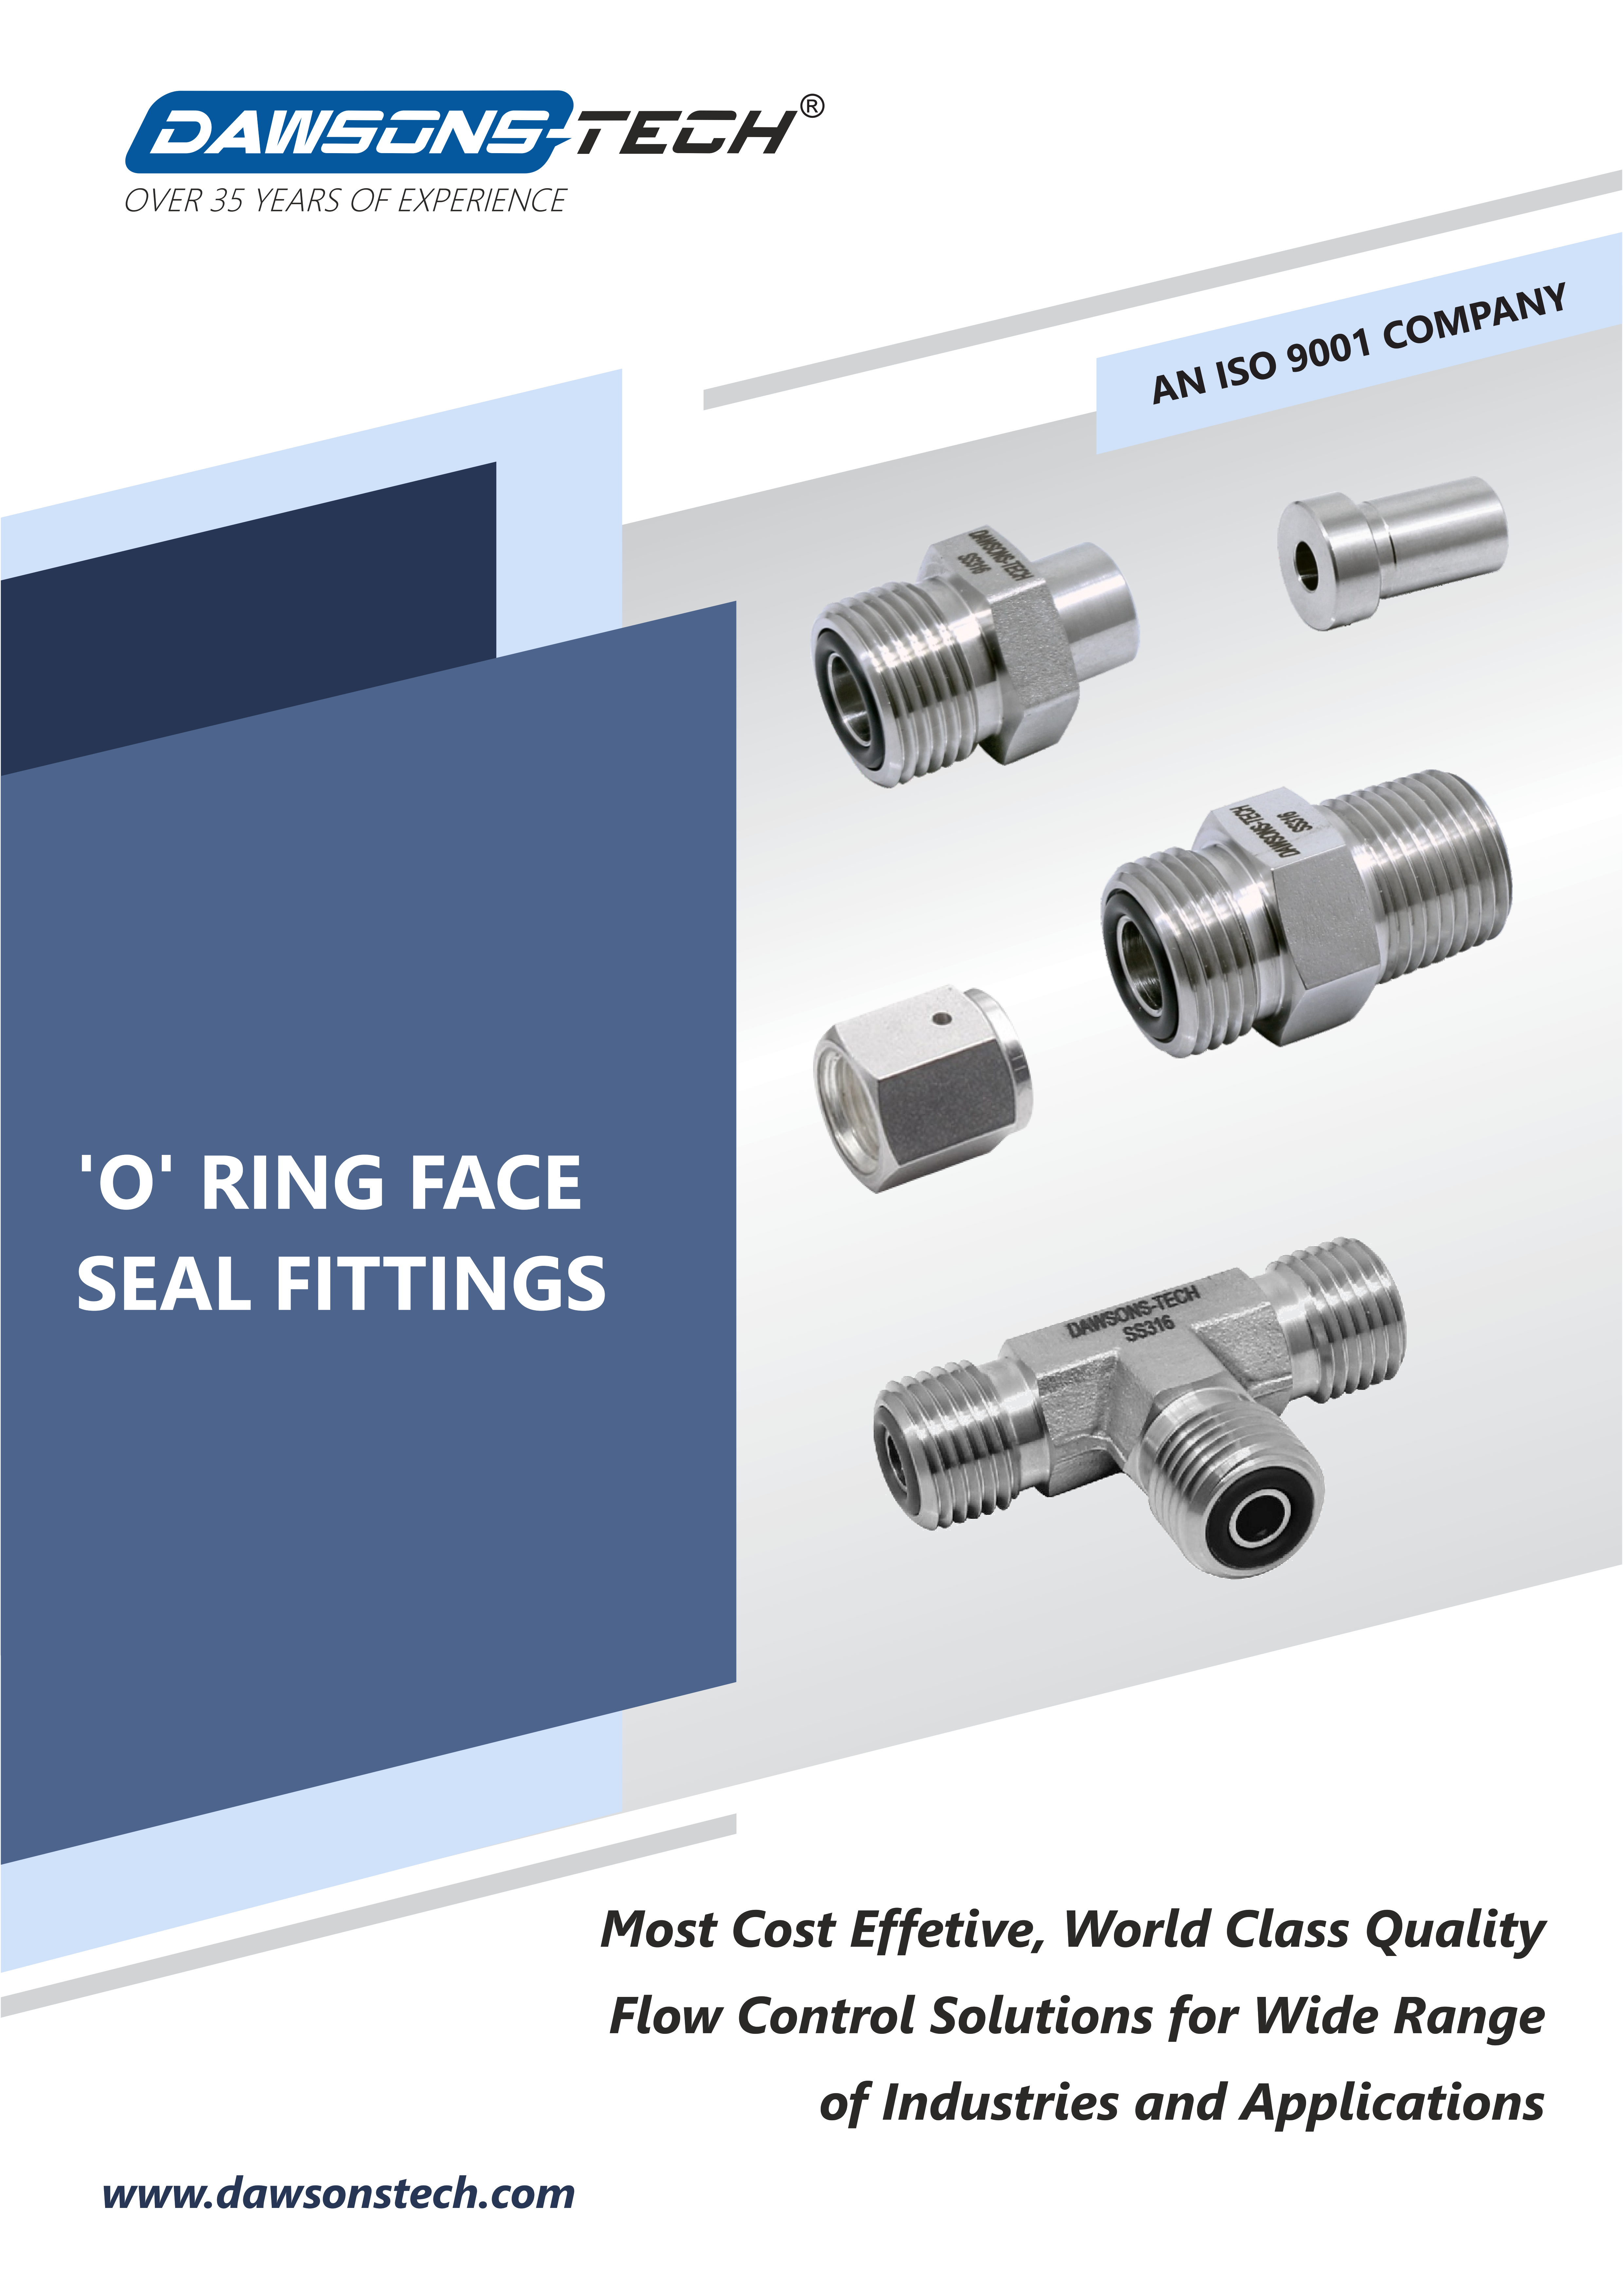 'O' Ring Face Seal Fittings